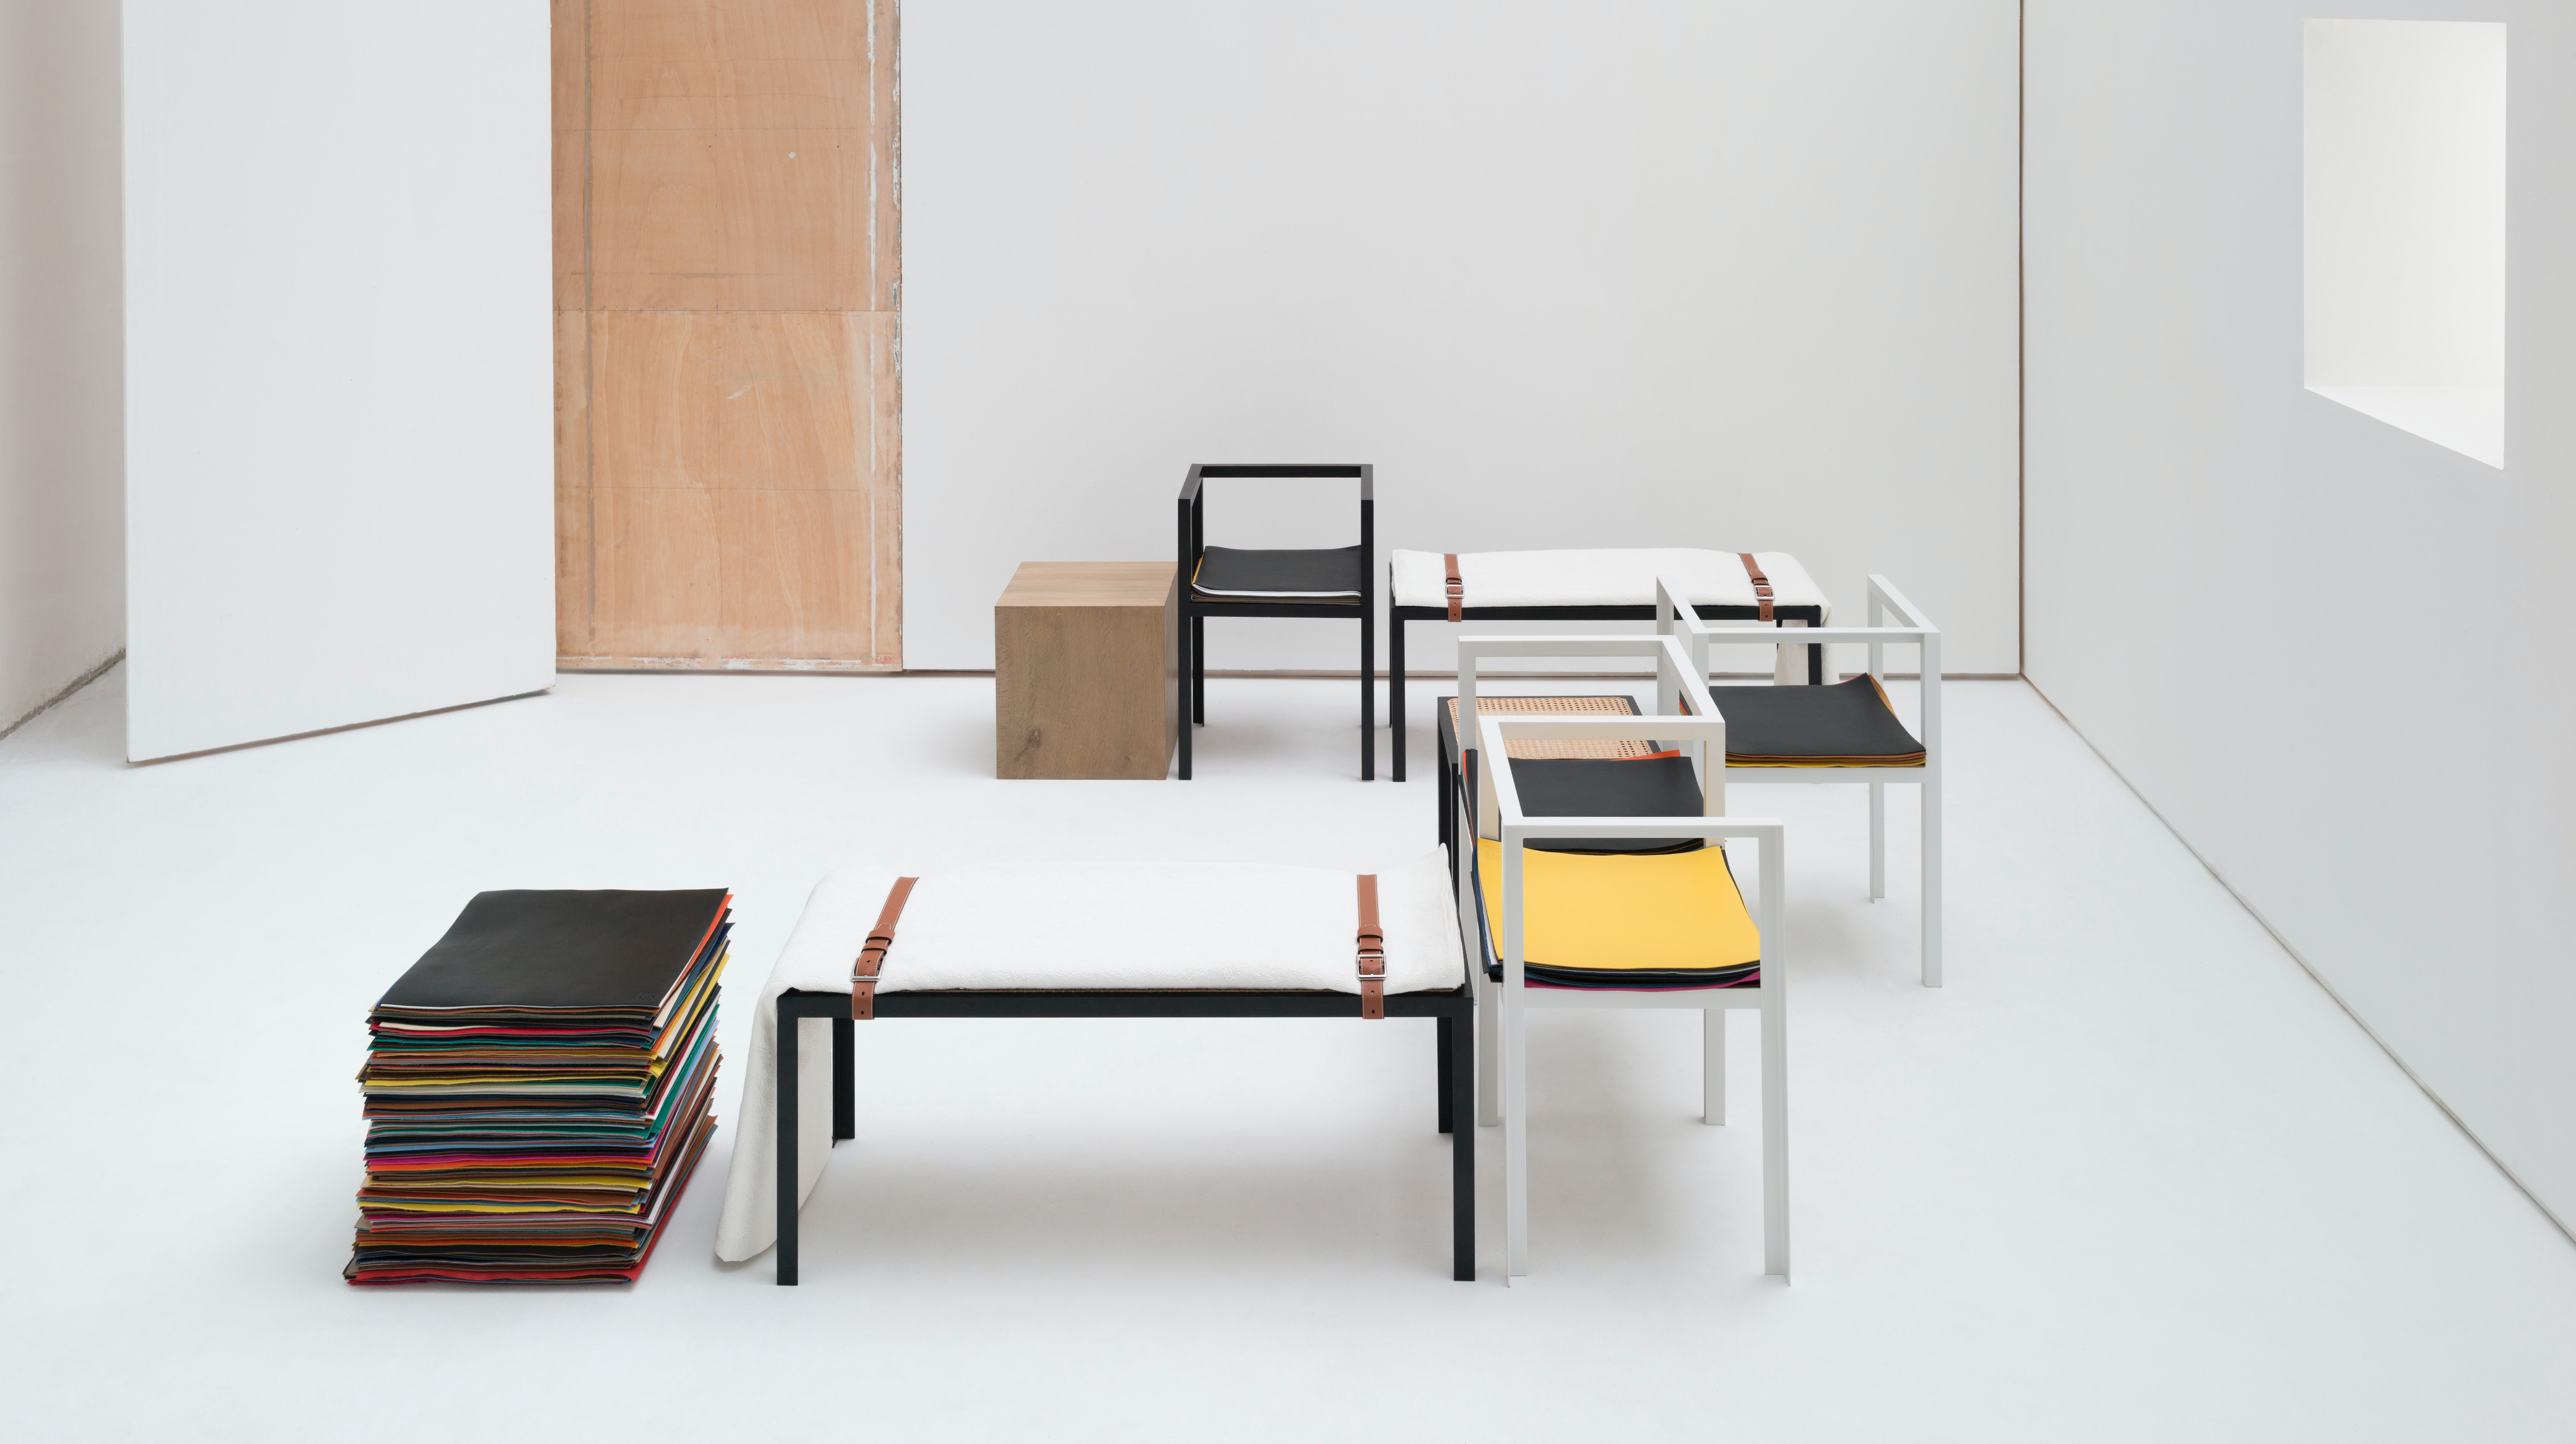 Loewe installation at Salone del Mobile | Source: Courtesy